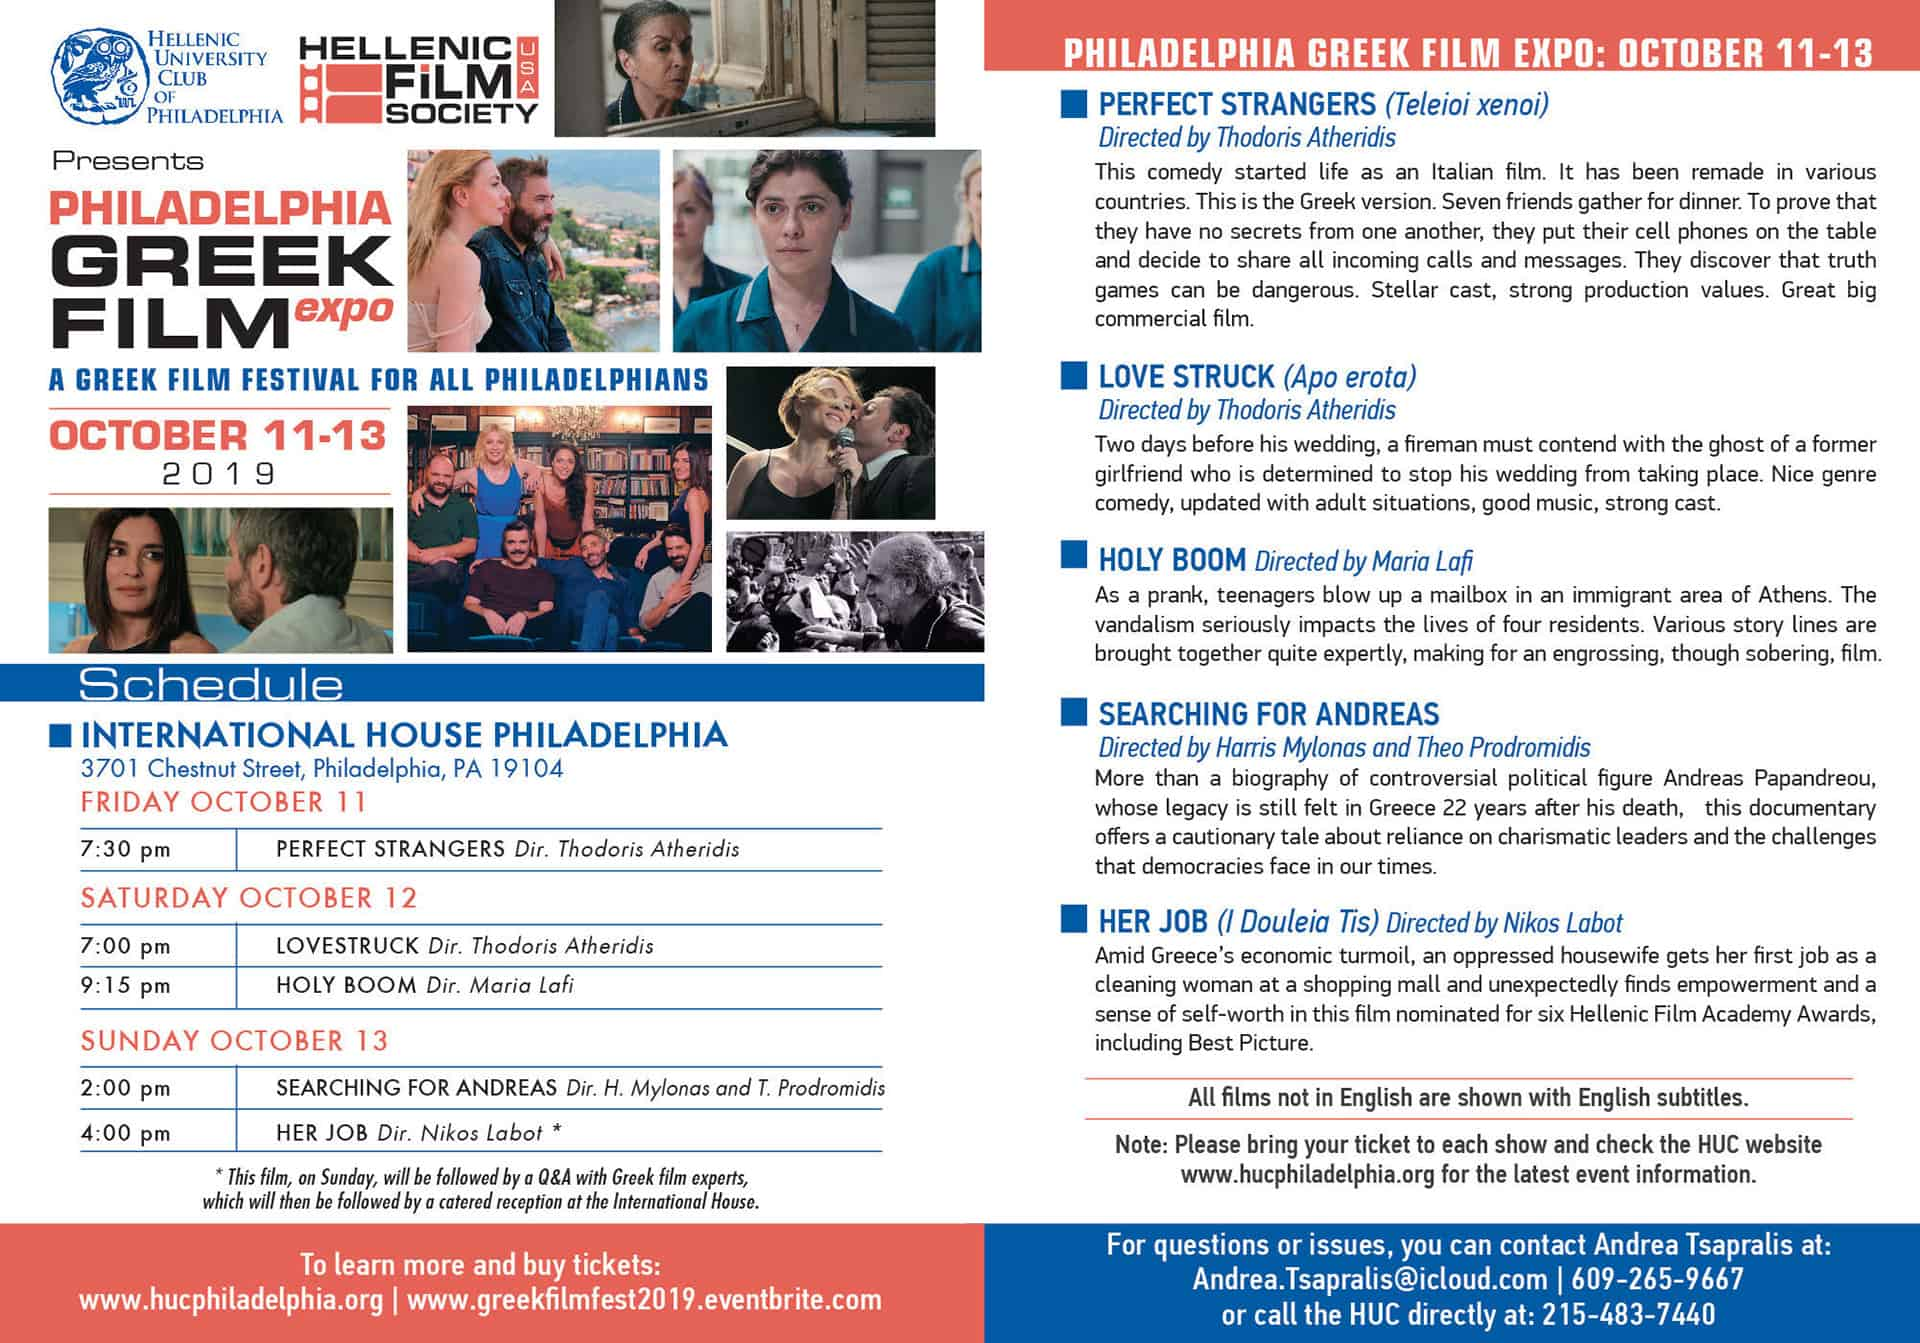 Philadelphia Greek Film Expo Schedule